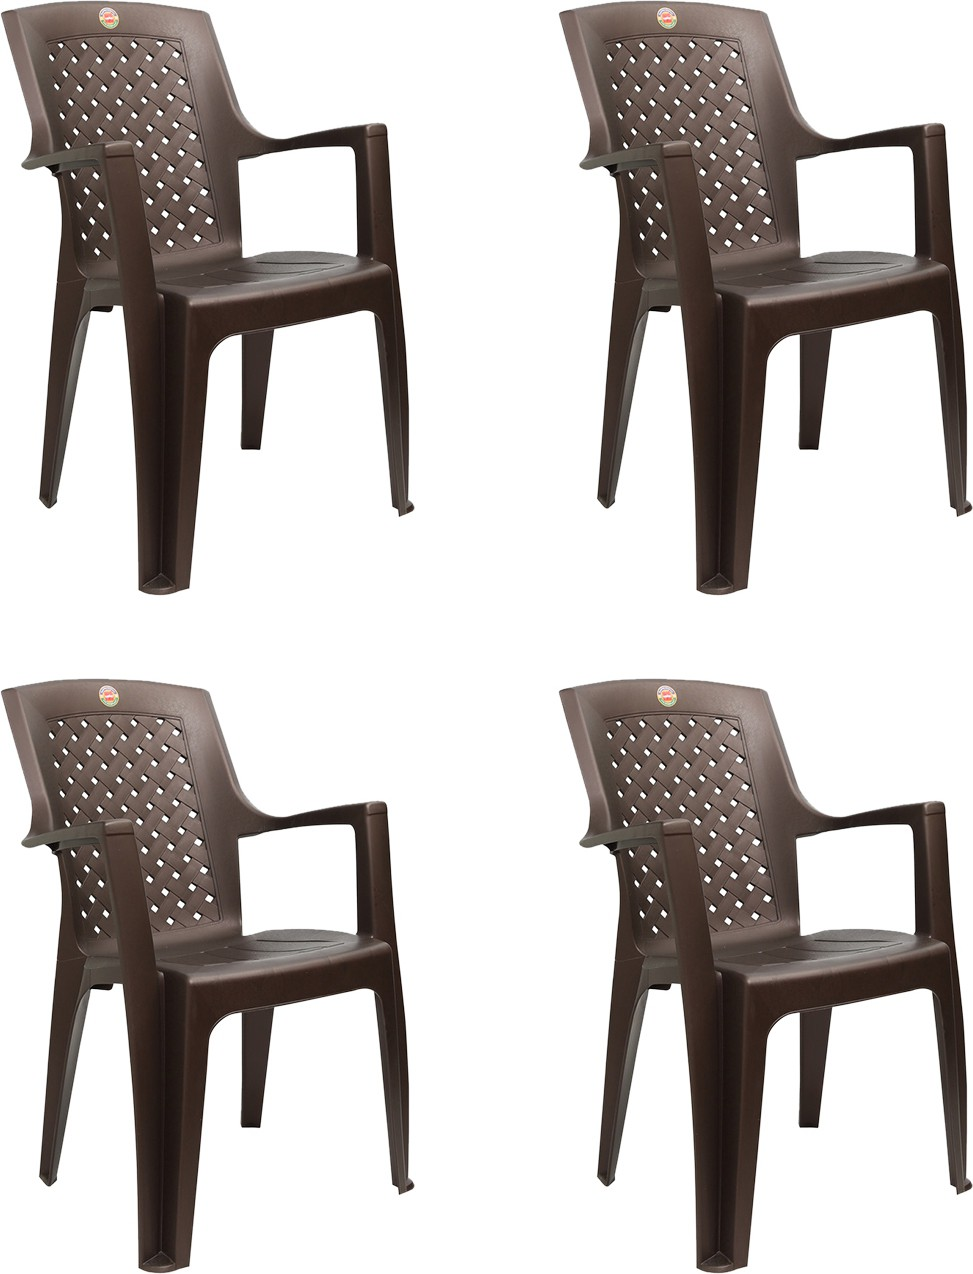 View Cello Furniture Plastic Living Room Chair(Finish Color - Ice Brown) Furniture (Cello Furniture)